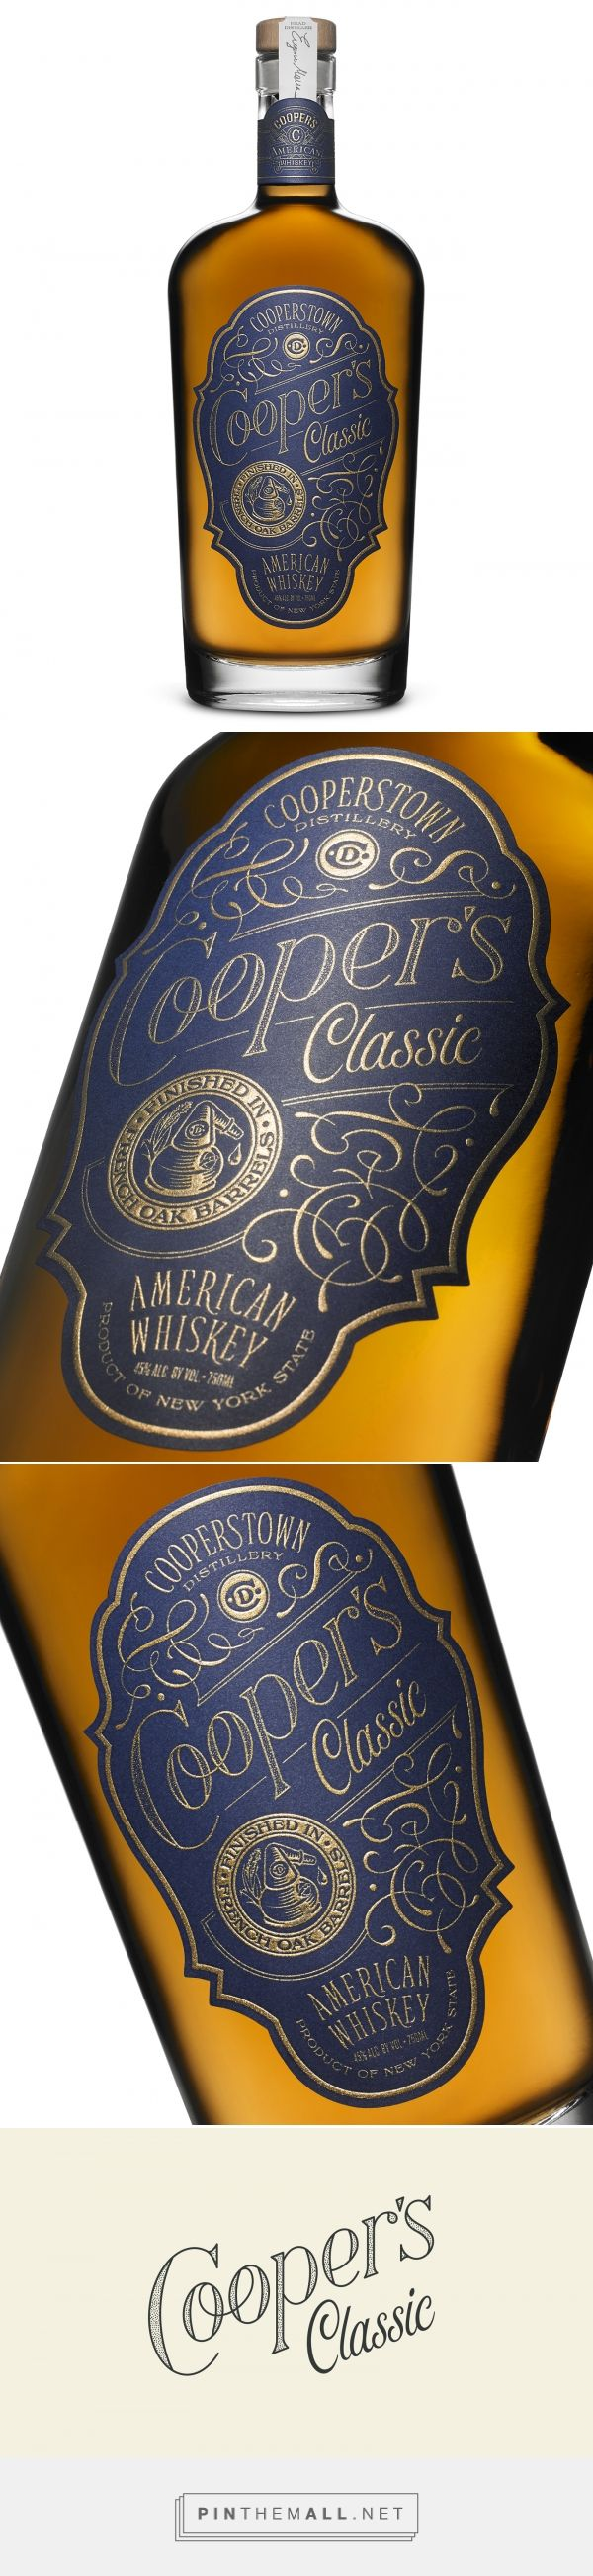 Cooper's Classic Whiskey - Packaging of the World - Creative Package Design Gallery - http://www.packagingoftheworld.com/2017/01/coopers-classic-whiskey.html